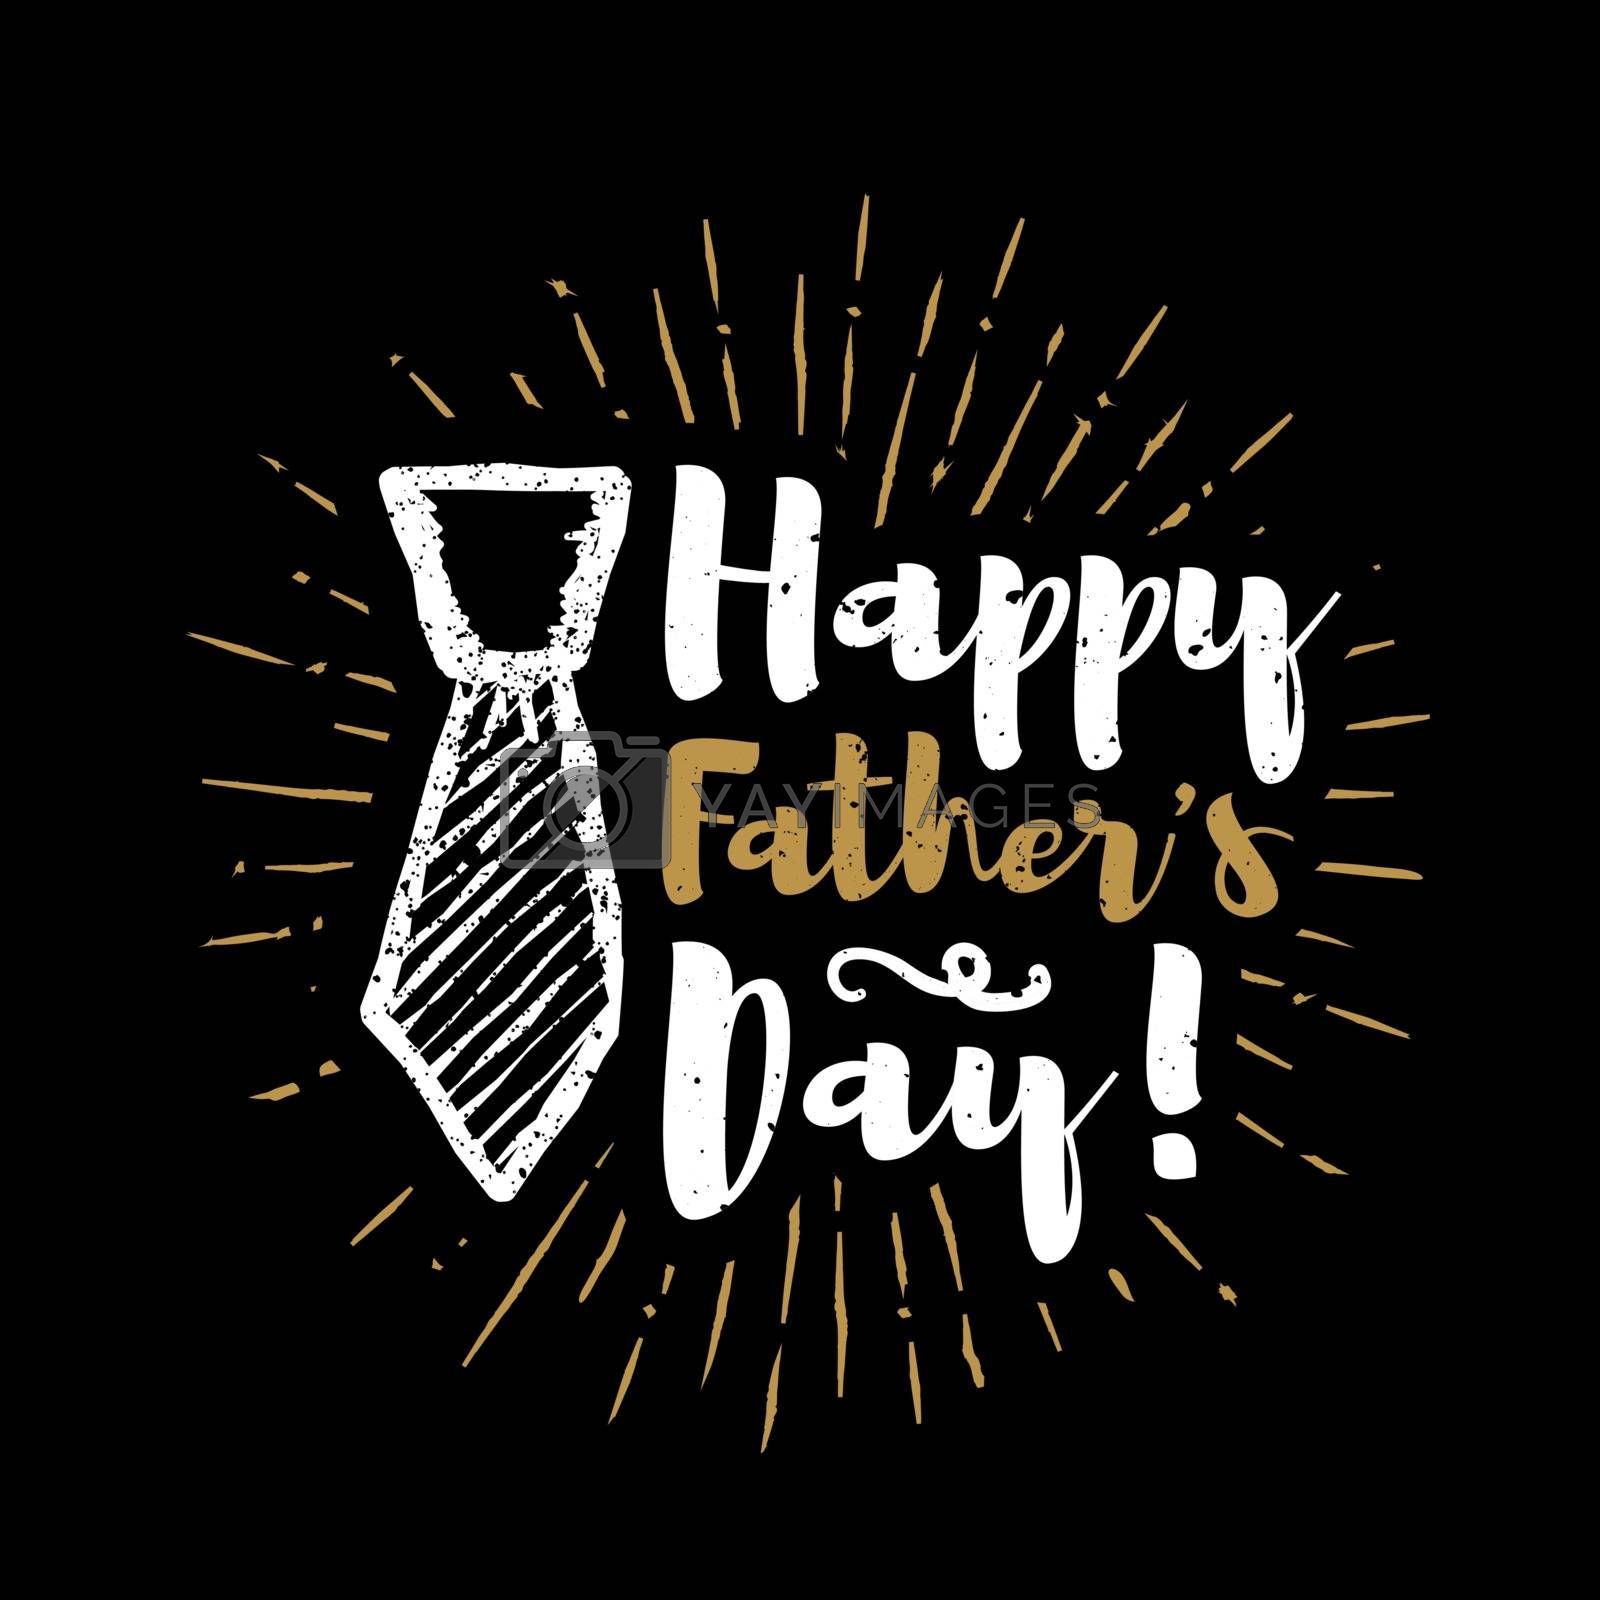 Happy father's day lettering with sunbursts background. Vector